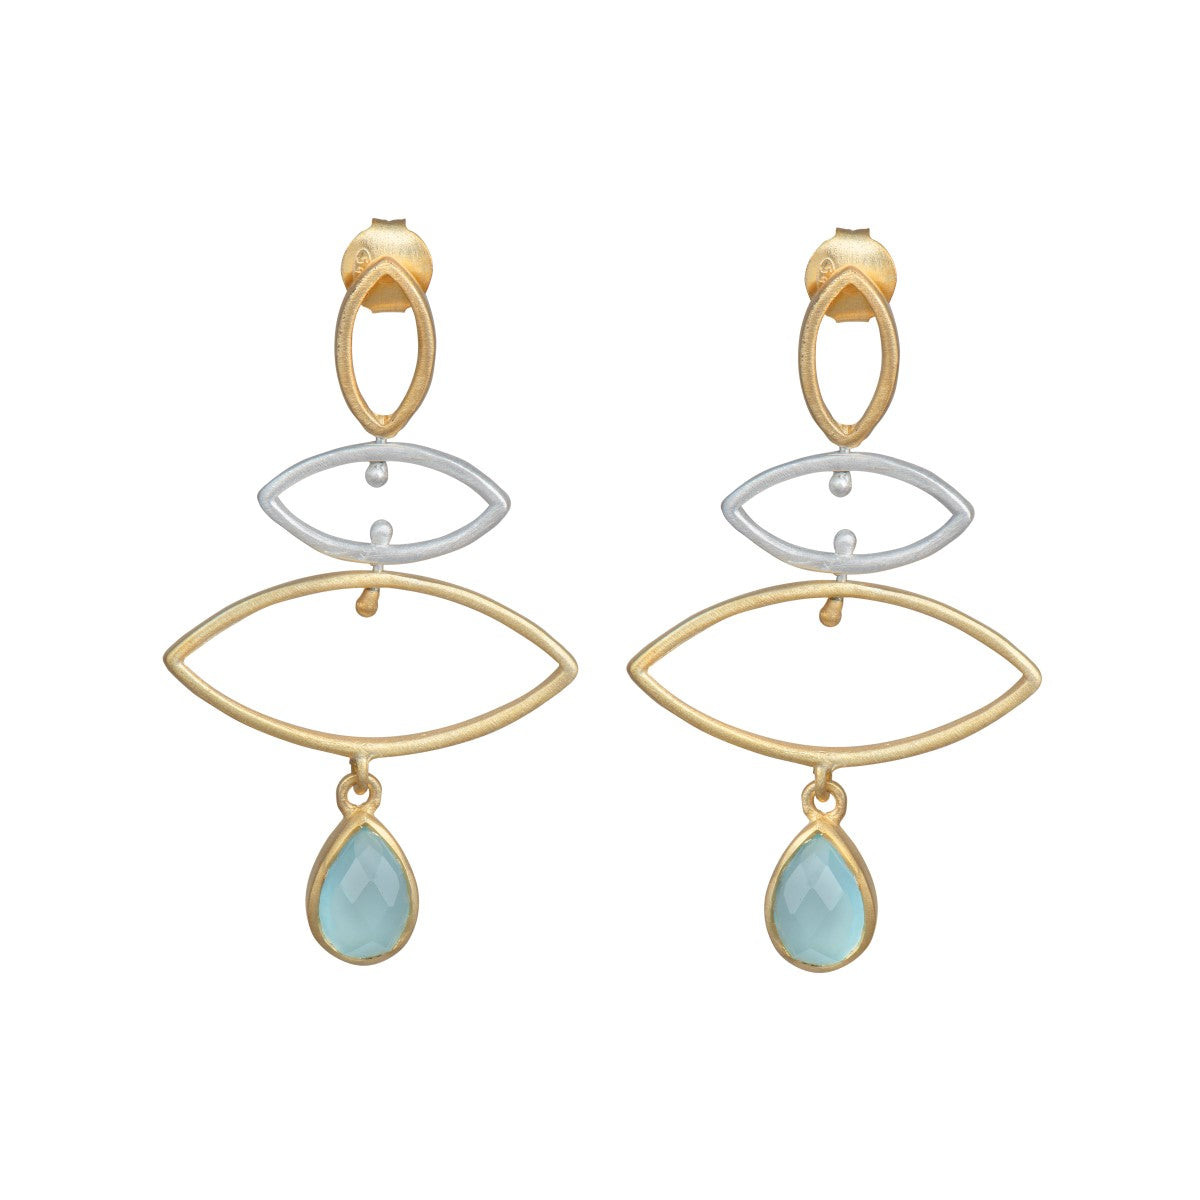 Long earrings in sterling silver and gold plated sterling silver with a stone drop - Aqua Chalcedony